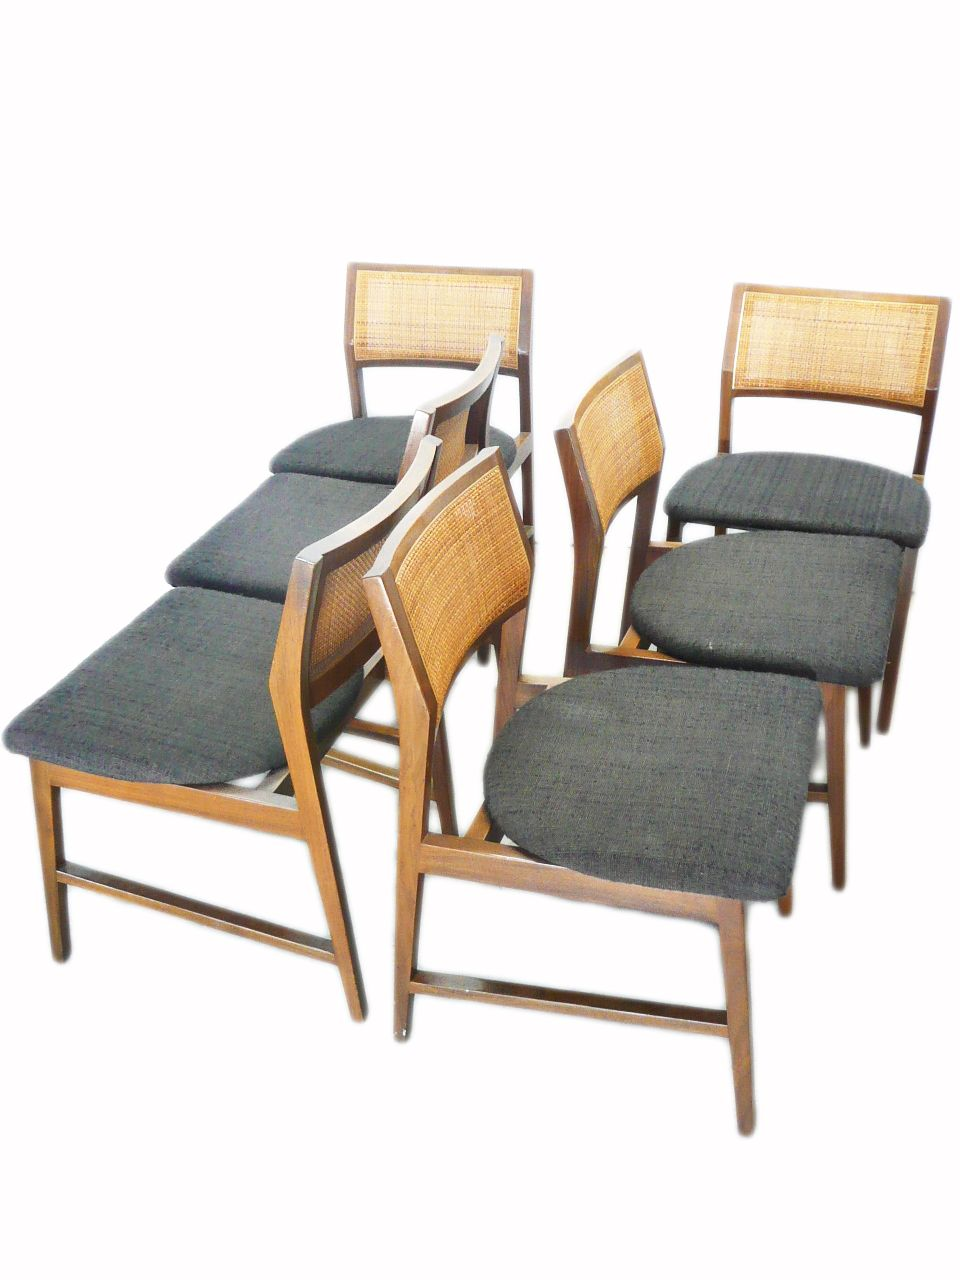 mid century kitchen chairs Mid Century Vintage Edward Wormley for Dunbar Cane Back Dining Chairs